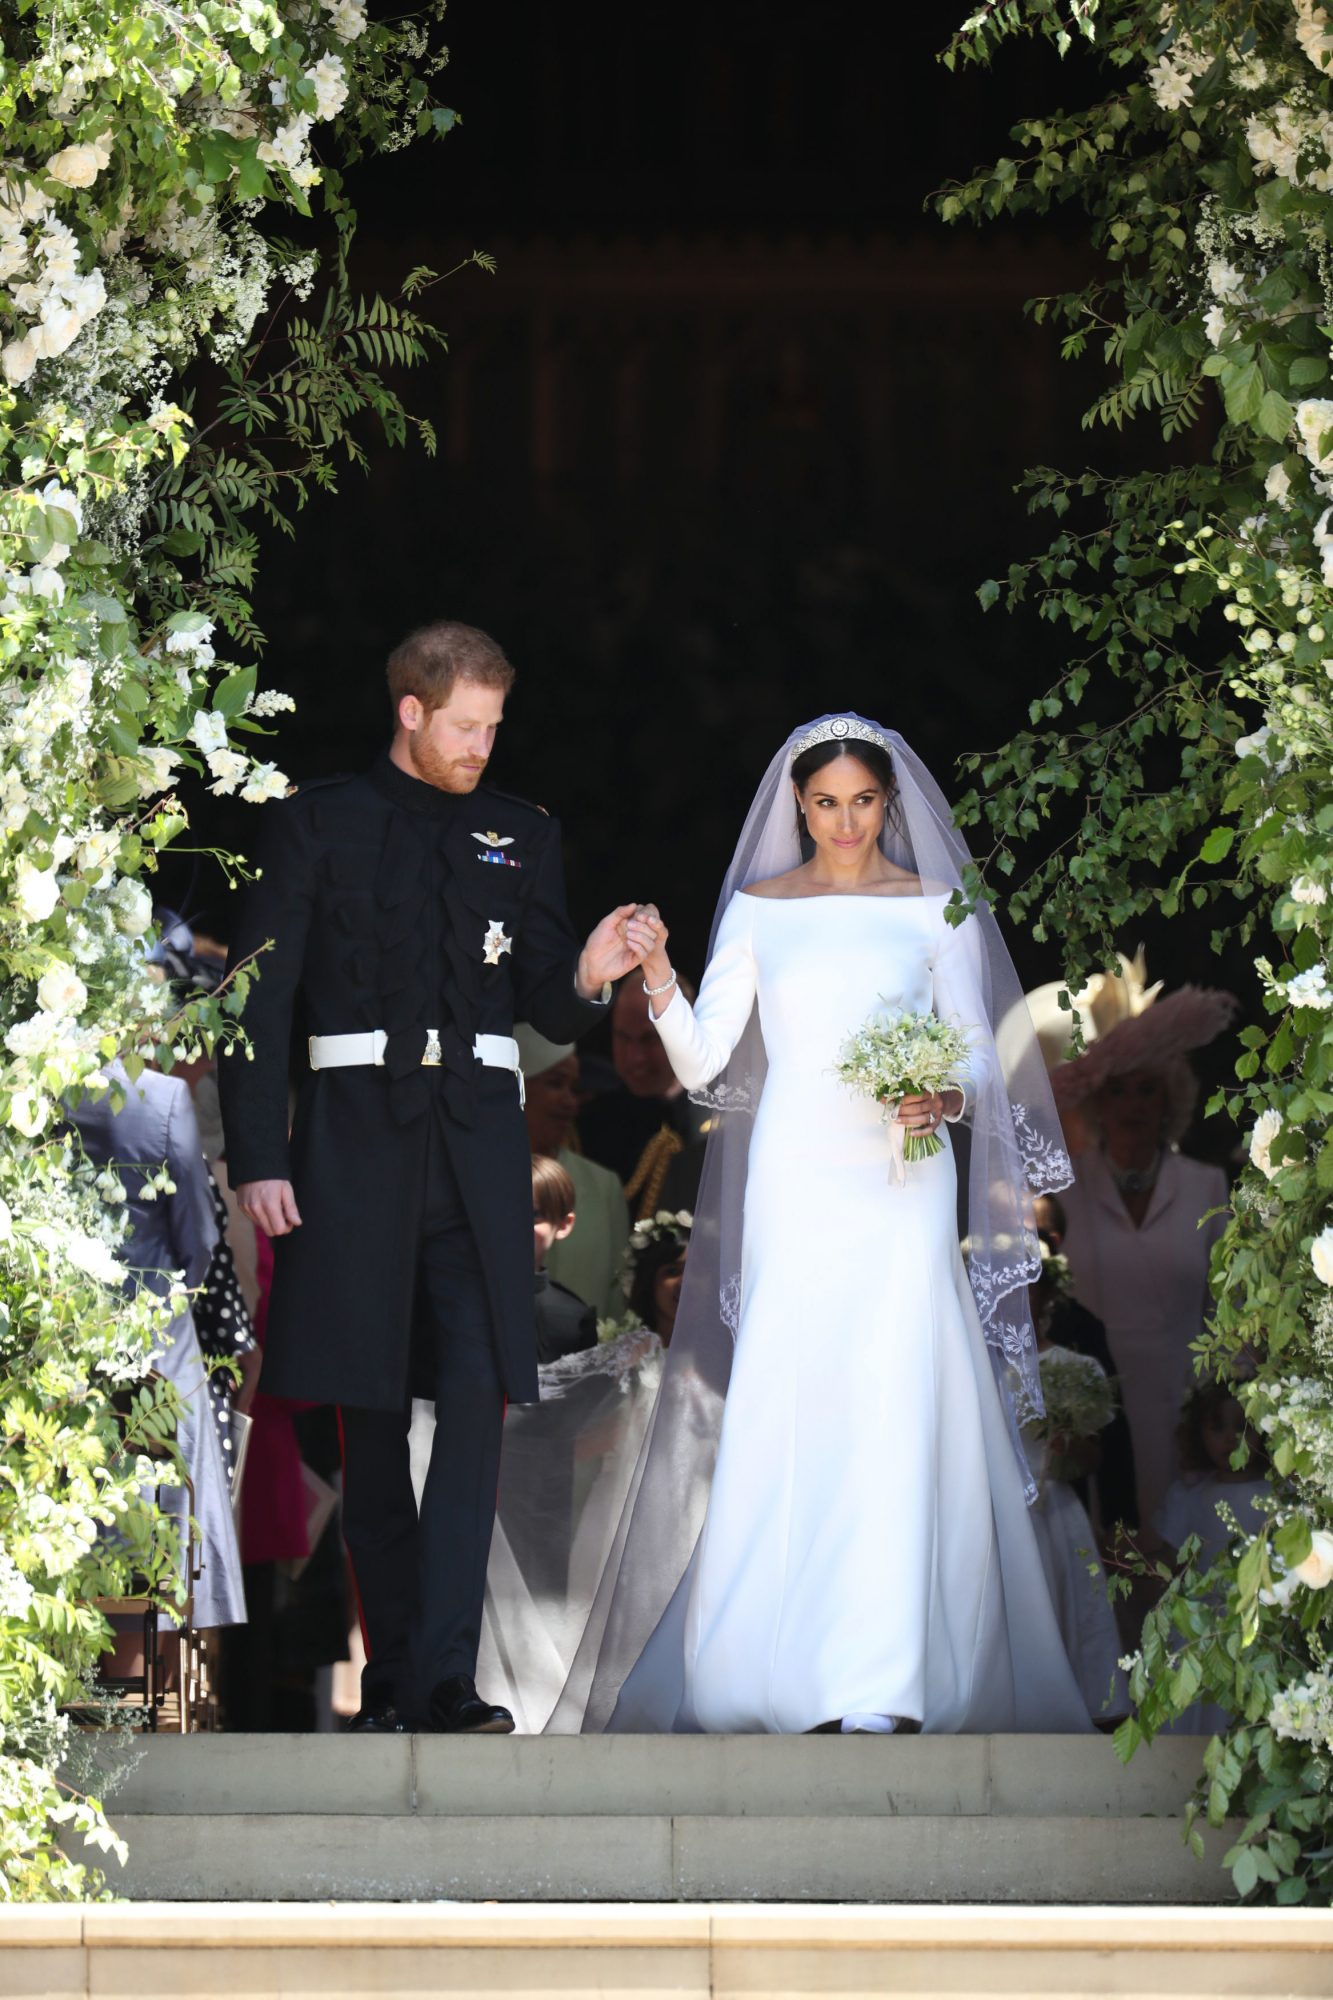 Prince Harry and Meghan Markle Leaving Church